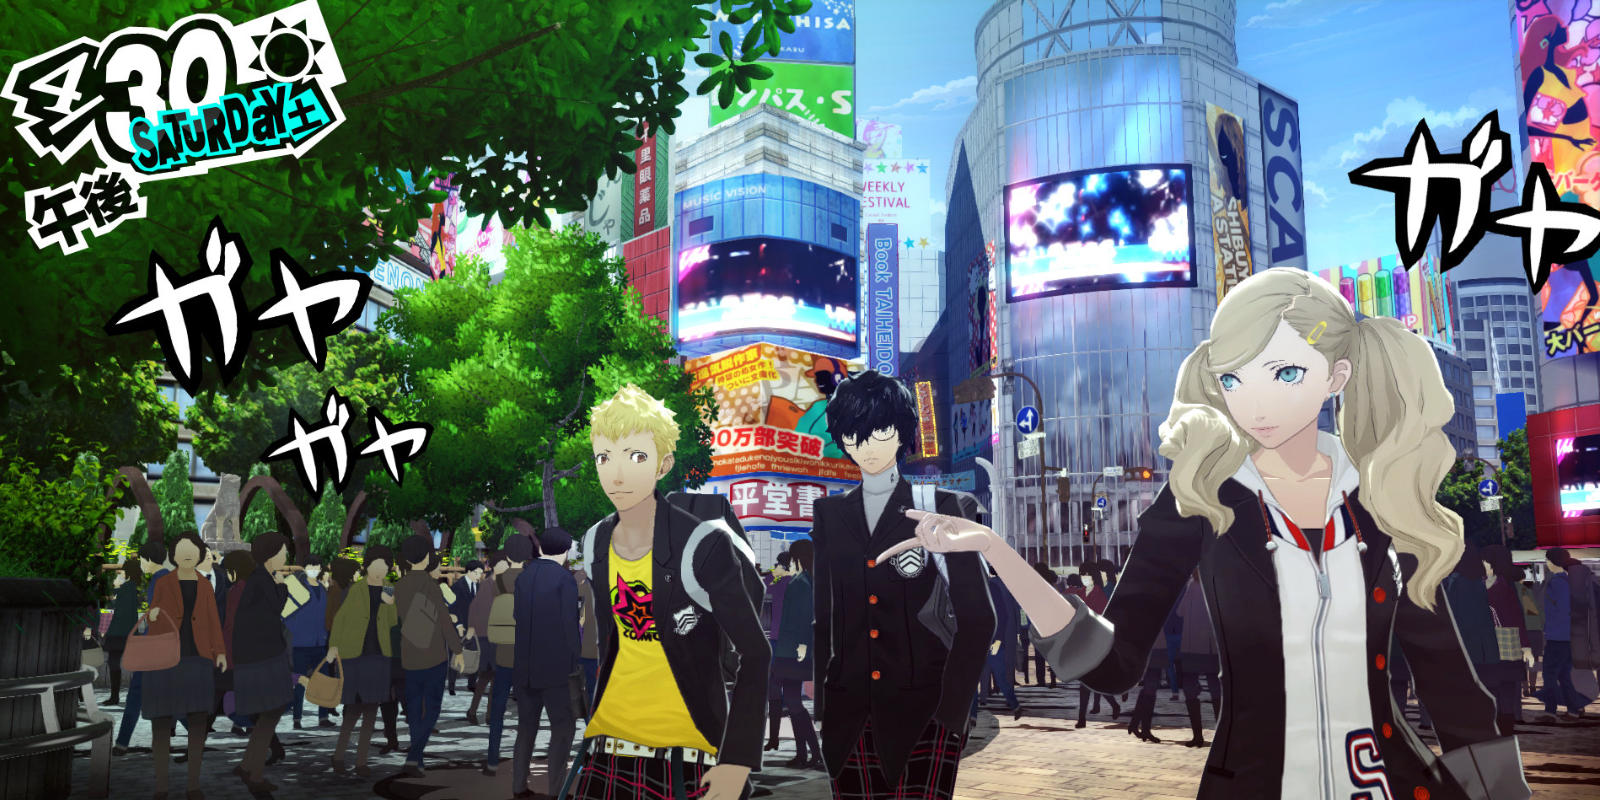 Three of the main characters, Ren, Ryuji, and Ann, pass through the Shibuya crossing on a sunny spring day.